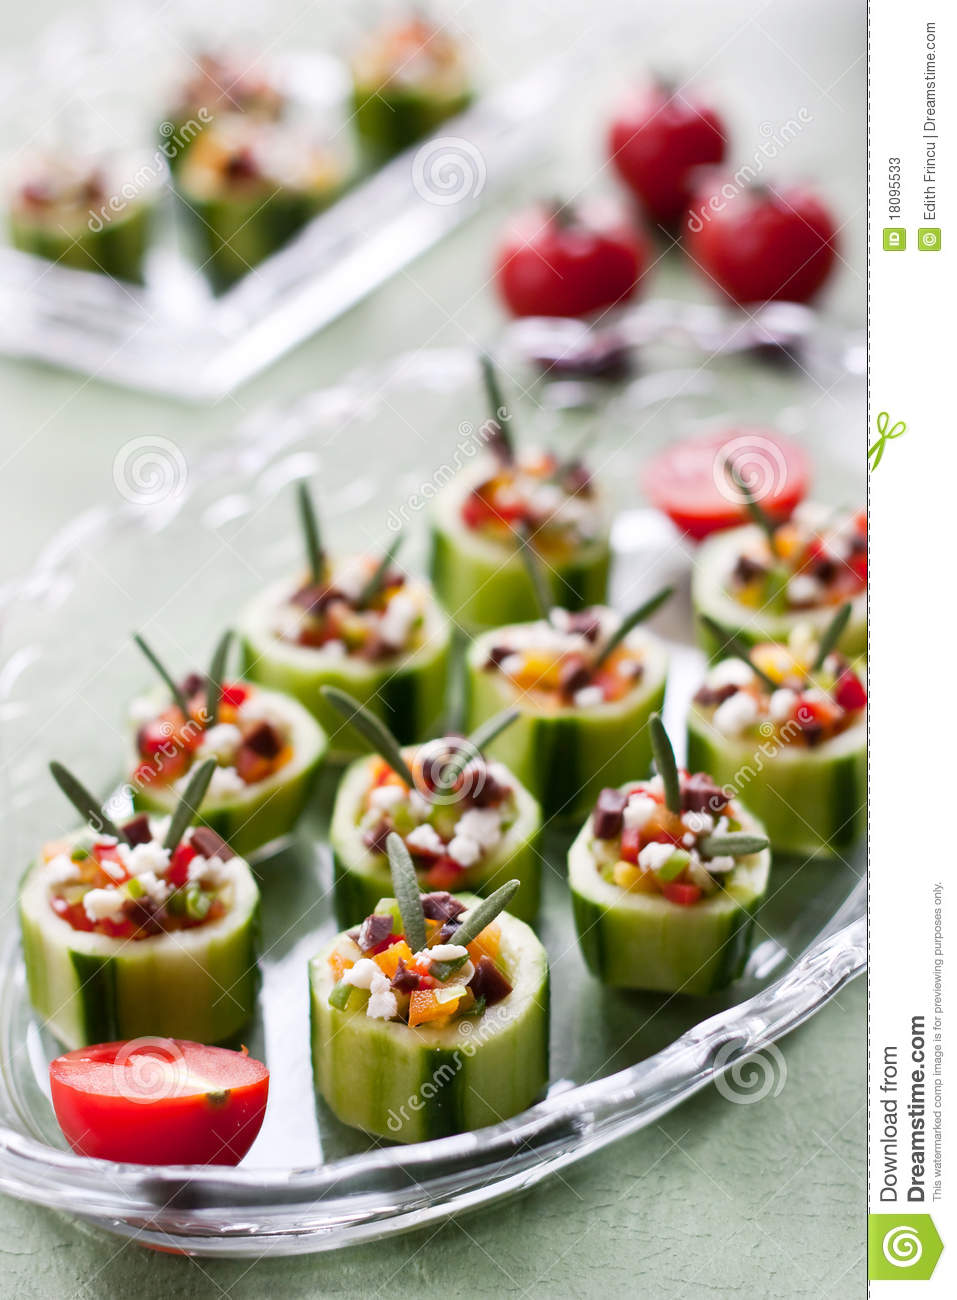 Cucumbers with fresh vegetables